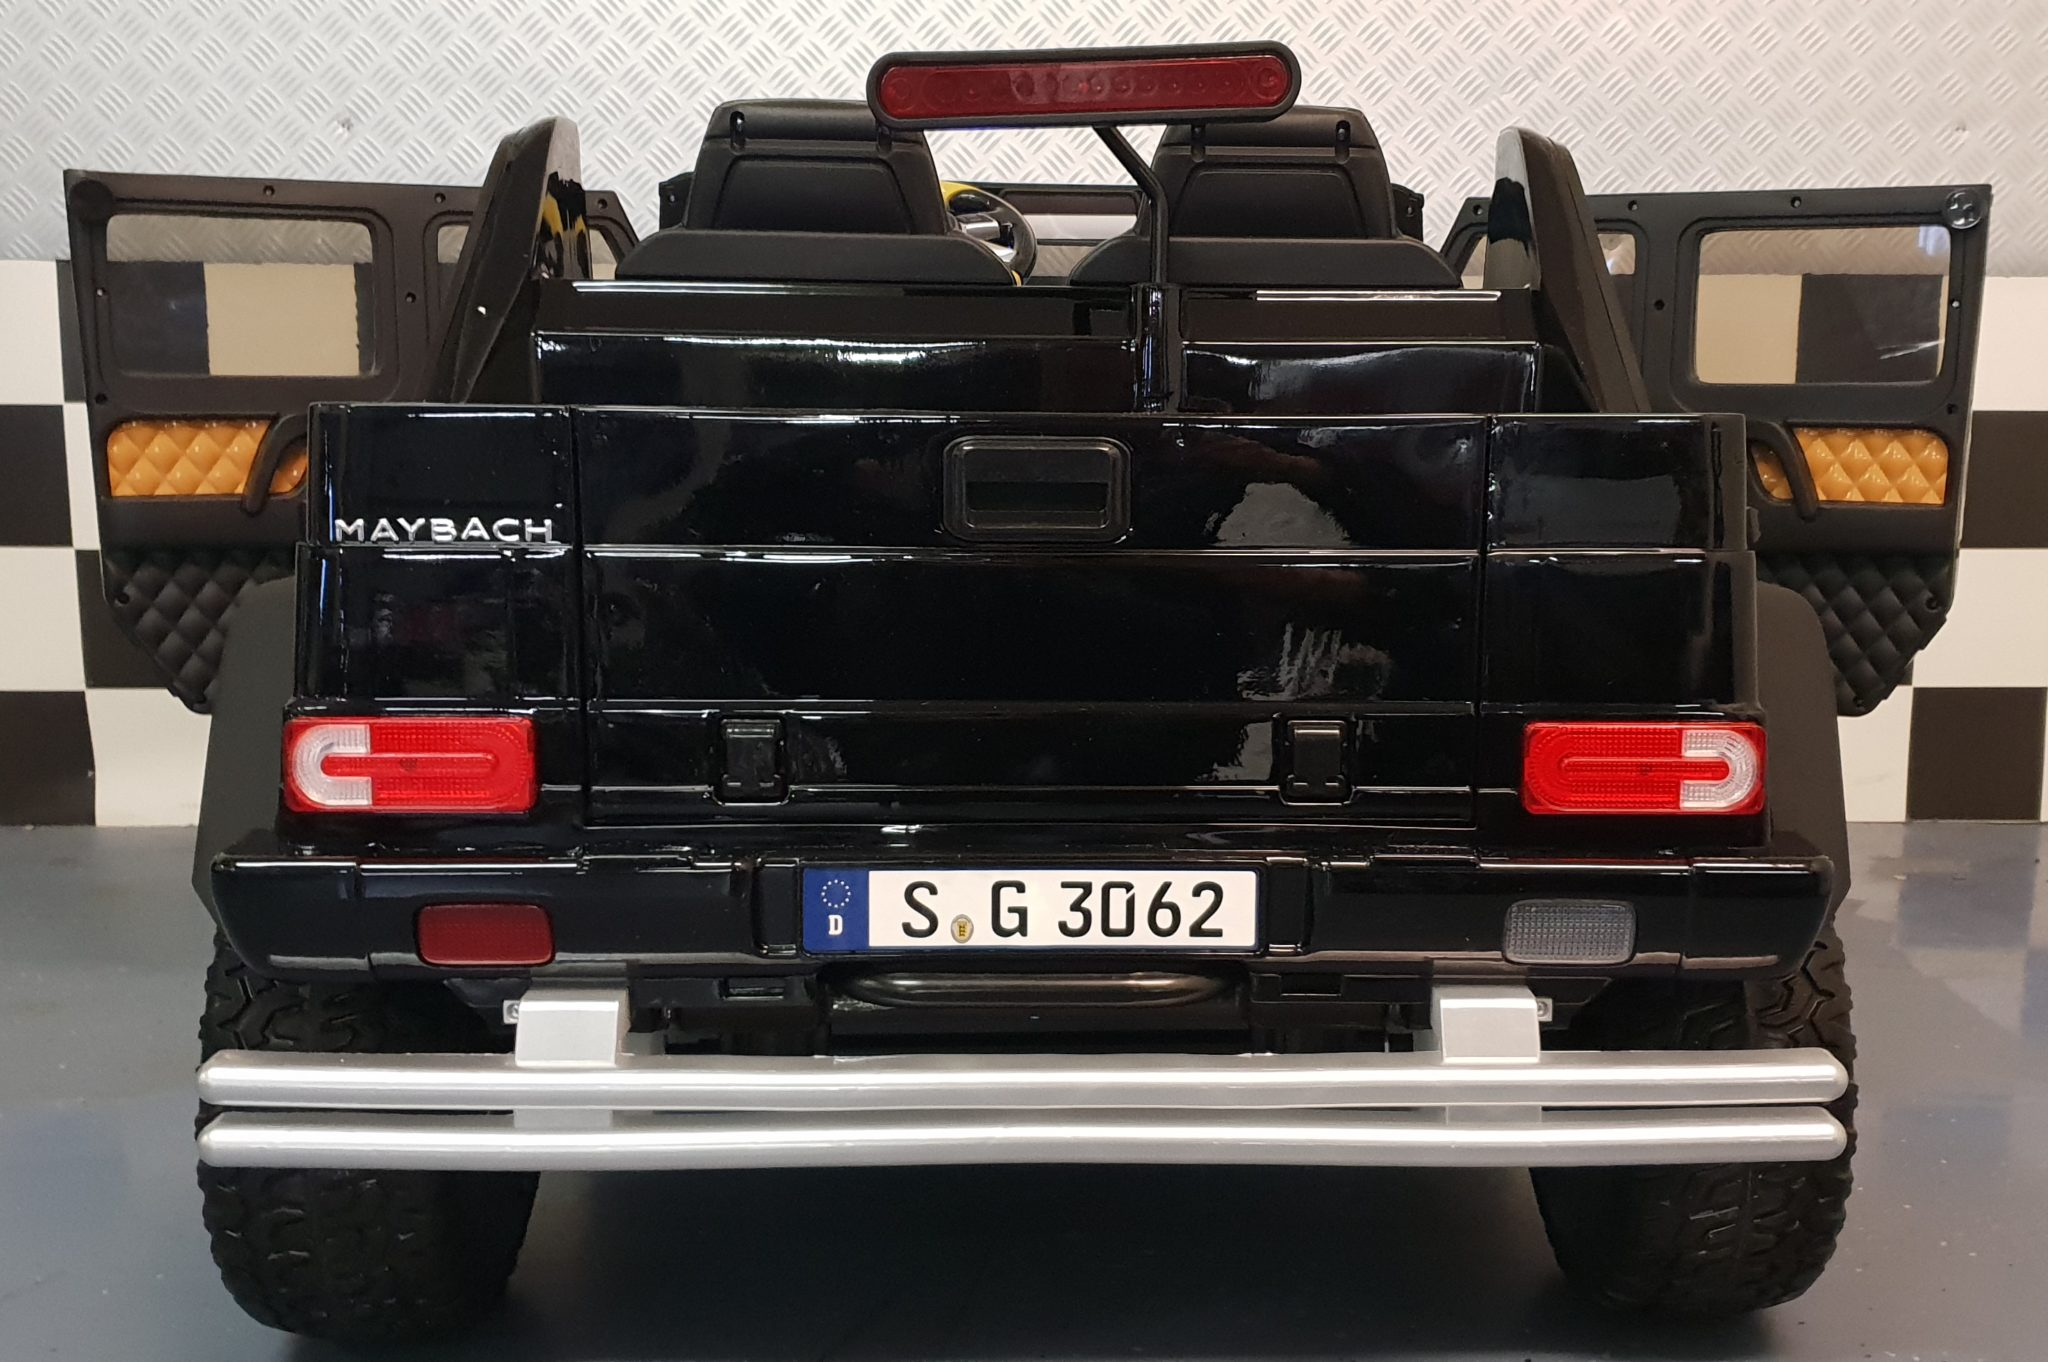 Accu Kinderauto Mercedes G650 Maybach 2 Persoons Cars4kids